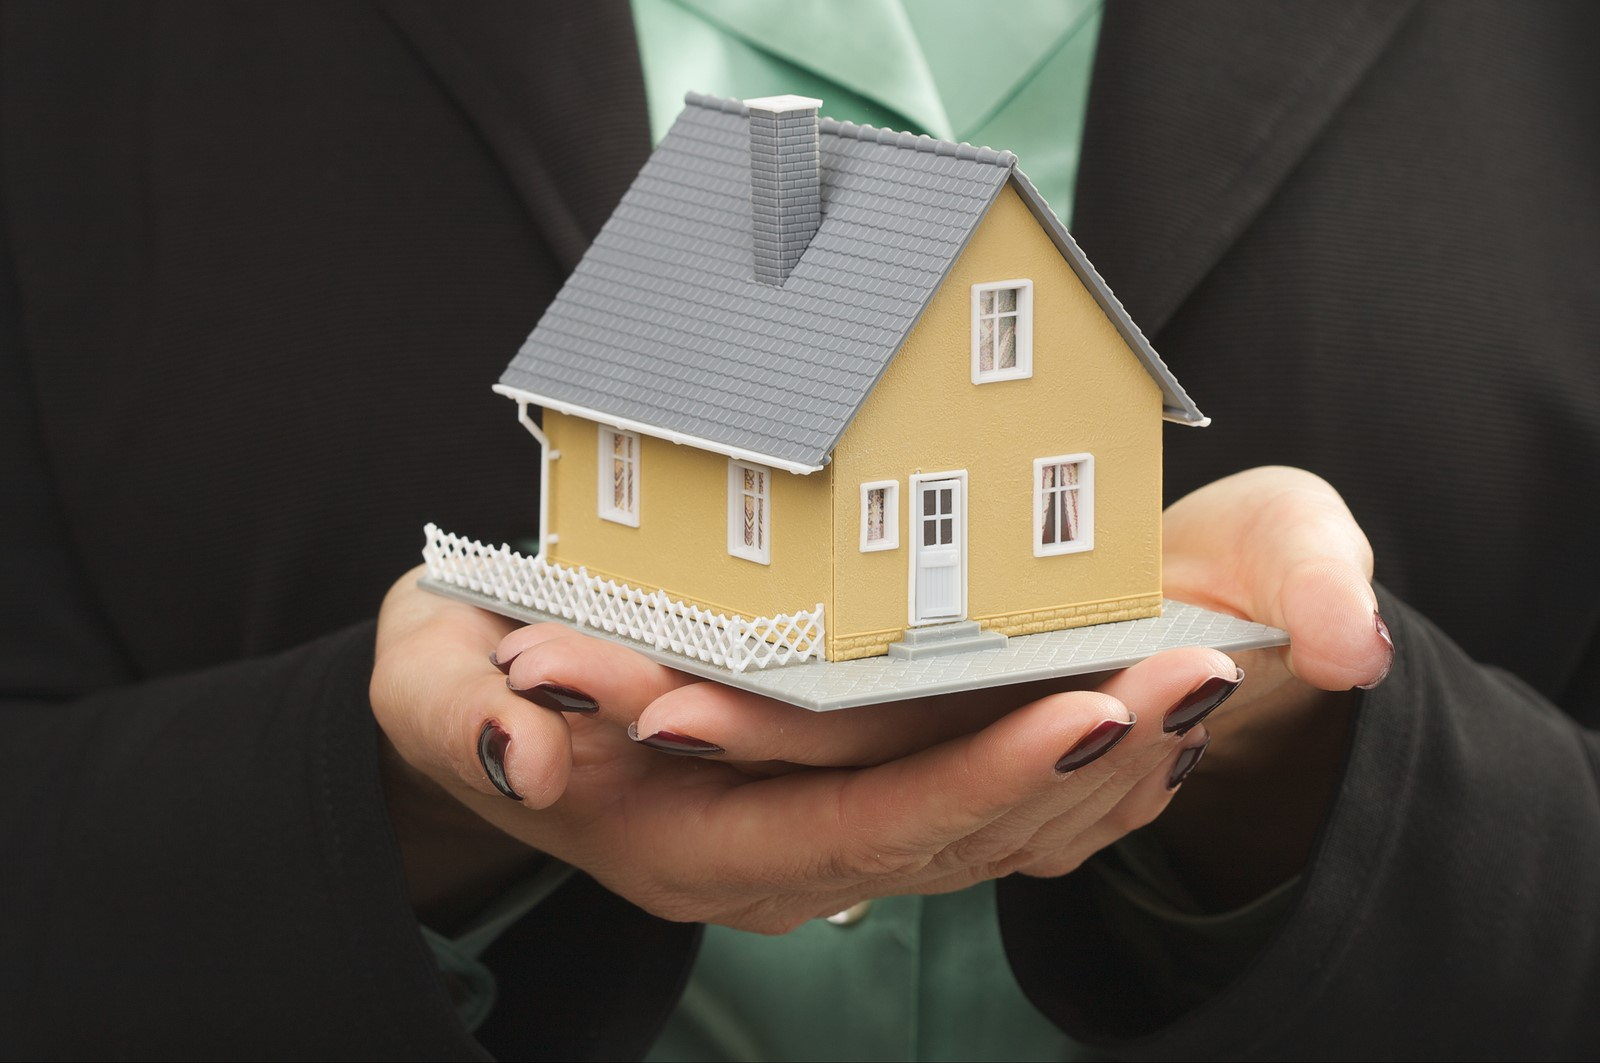 A Miniature Model of a Home Sitting in the Hands of a Property Manager